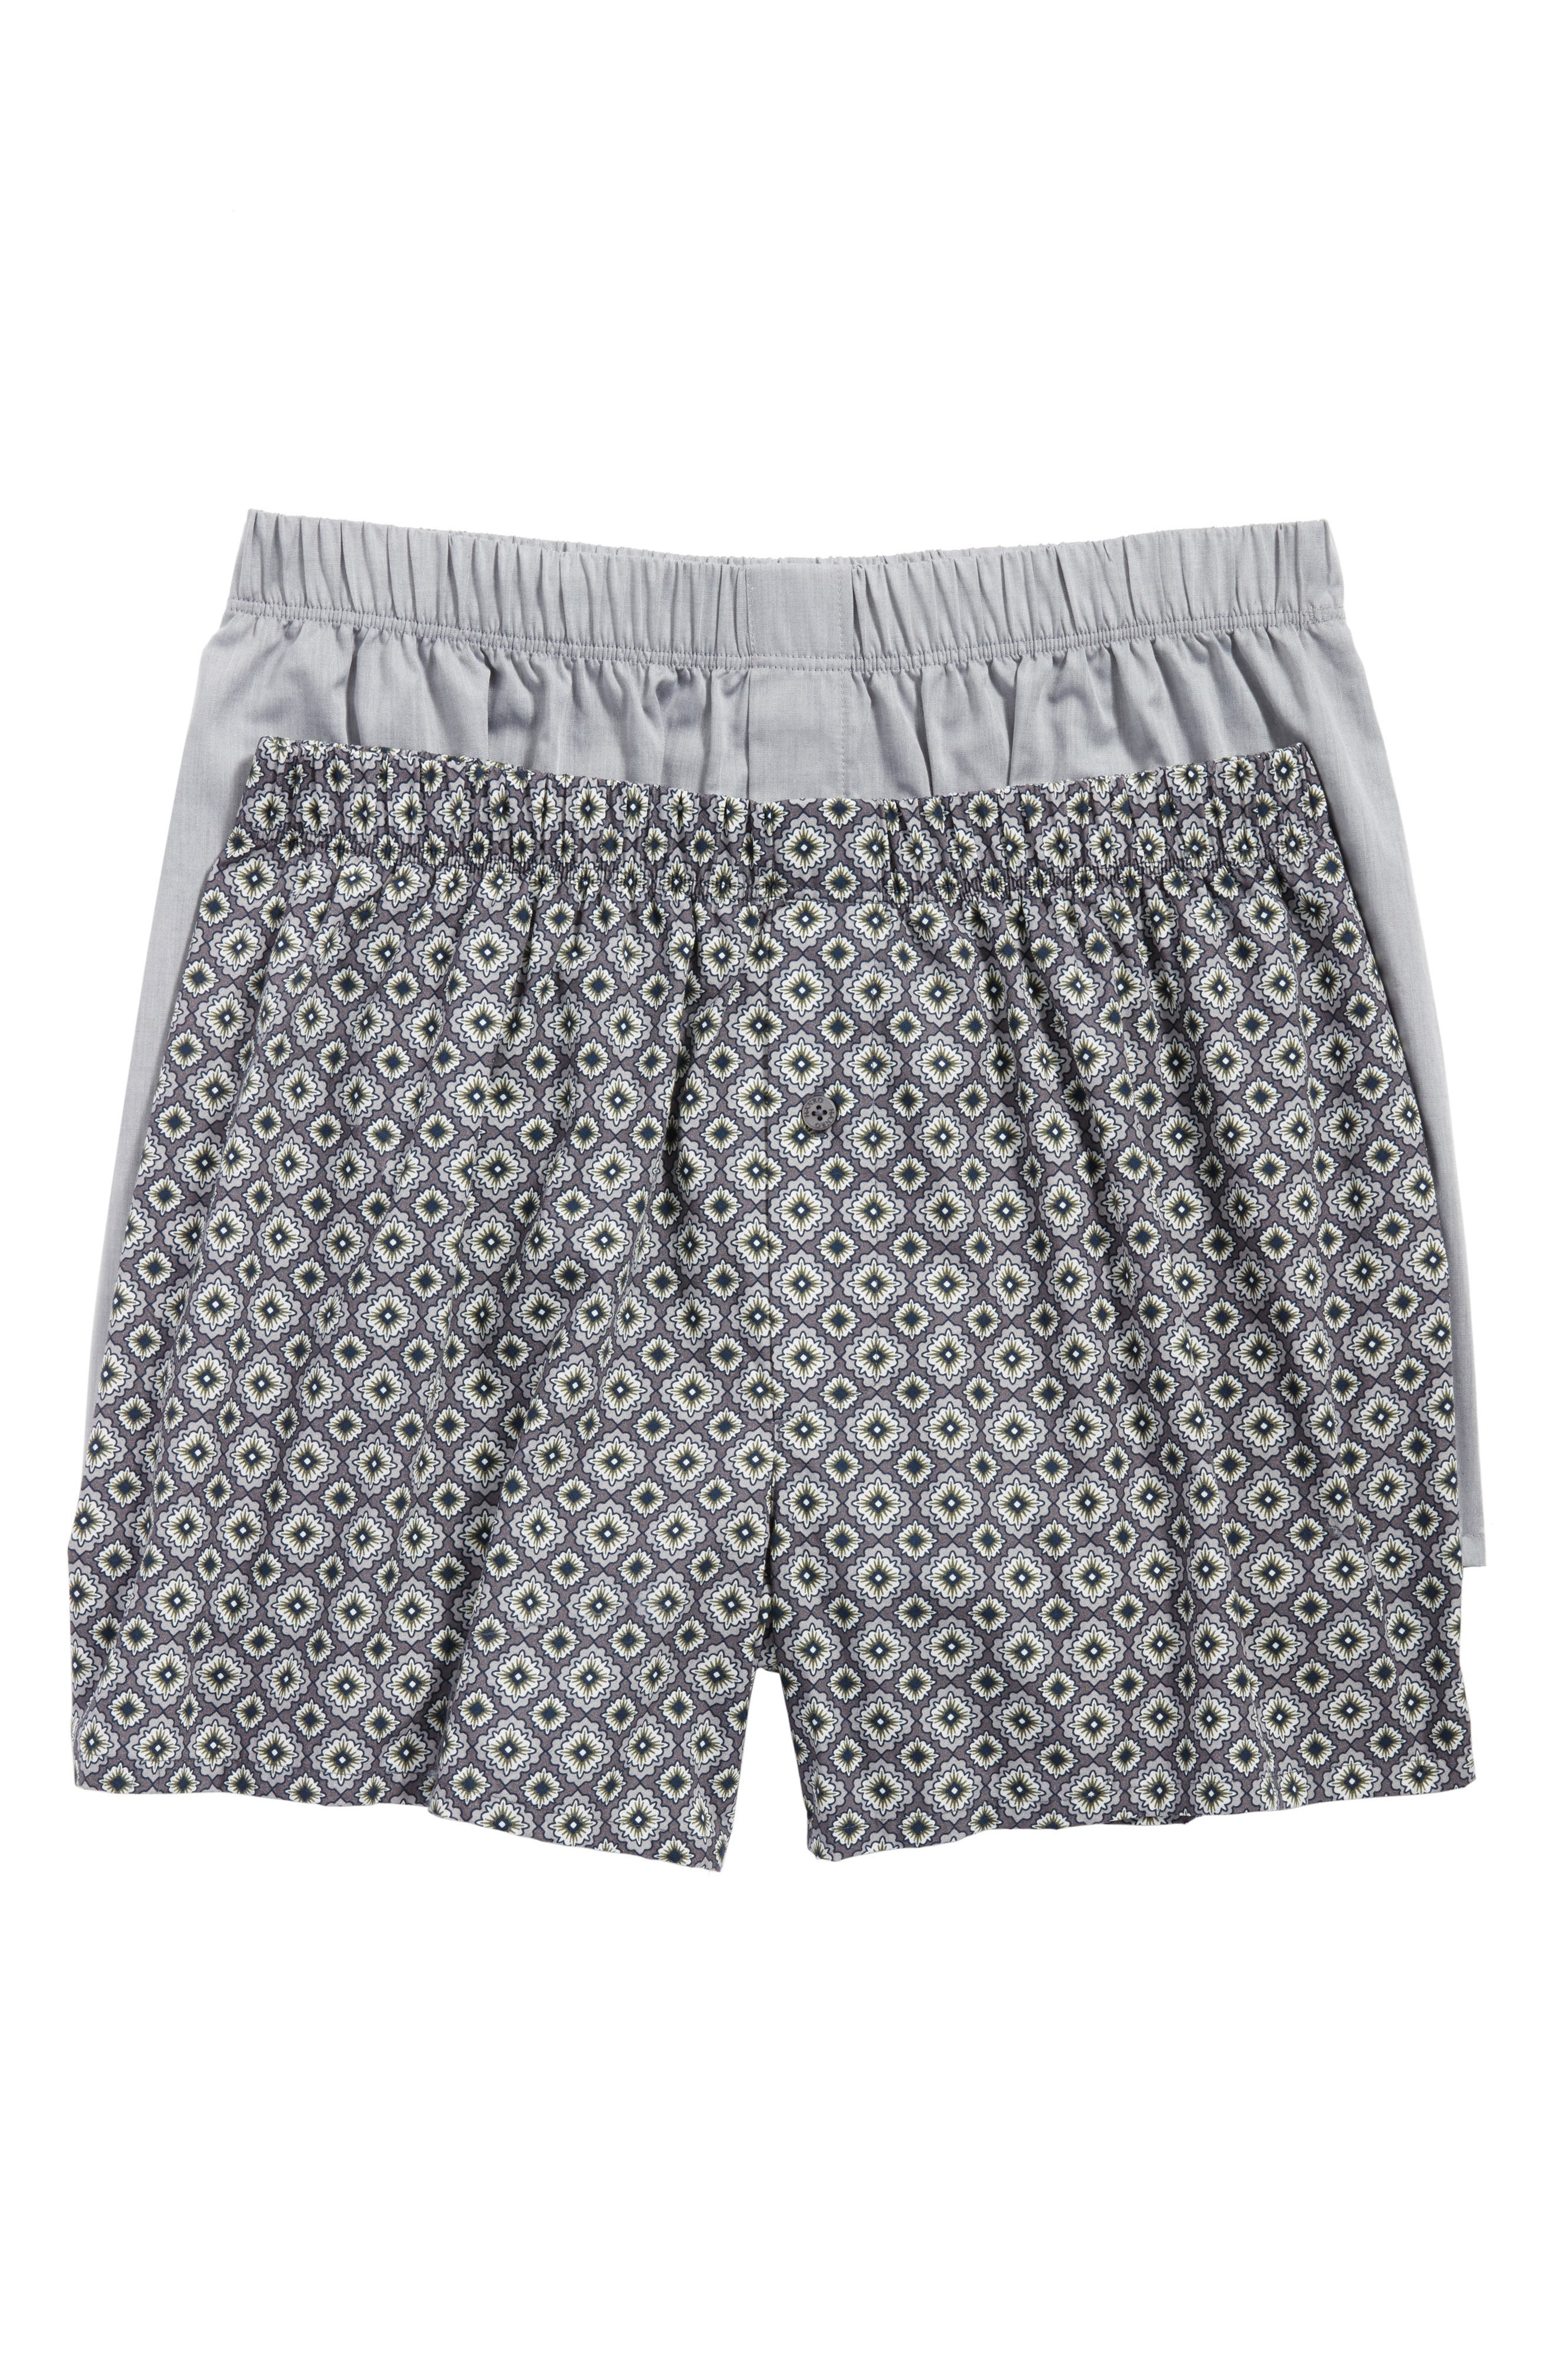 2-Pack Fancy Woven Boxers,                             Main thumbnail 1, color,                             Grey/ Squared Flowers